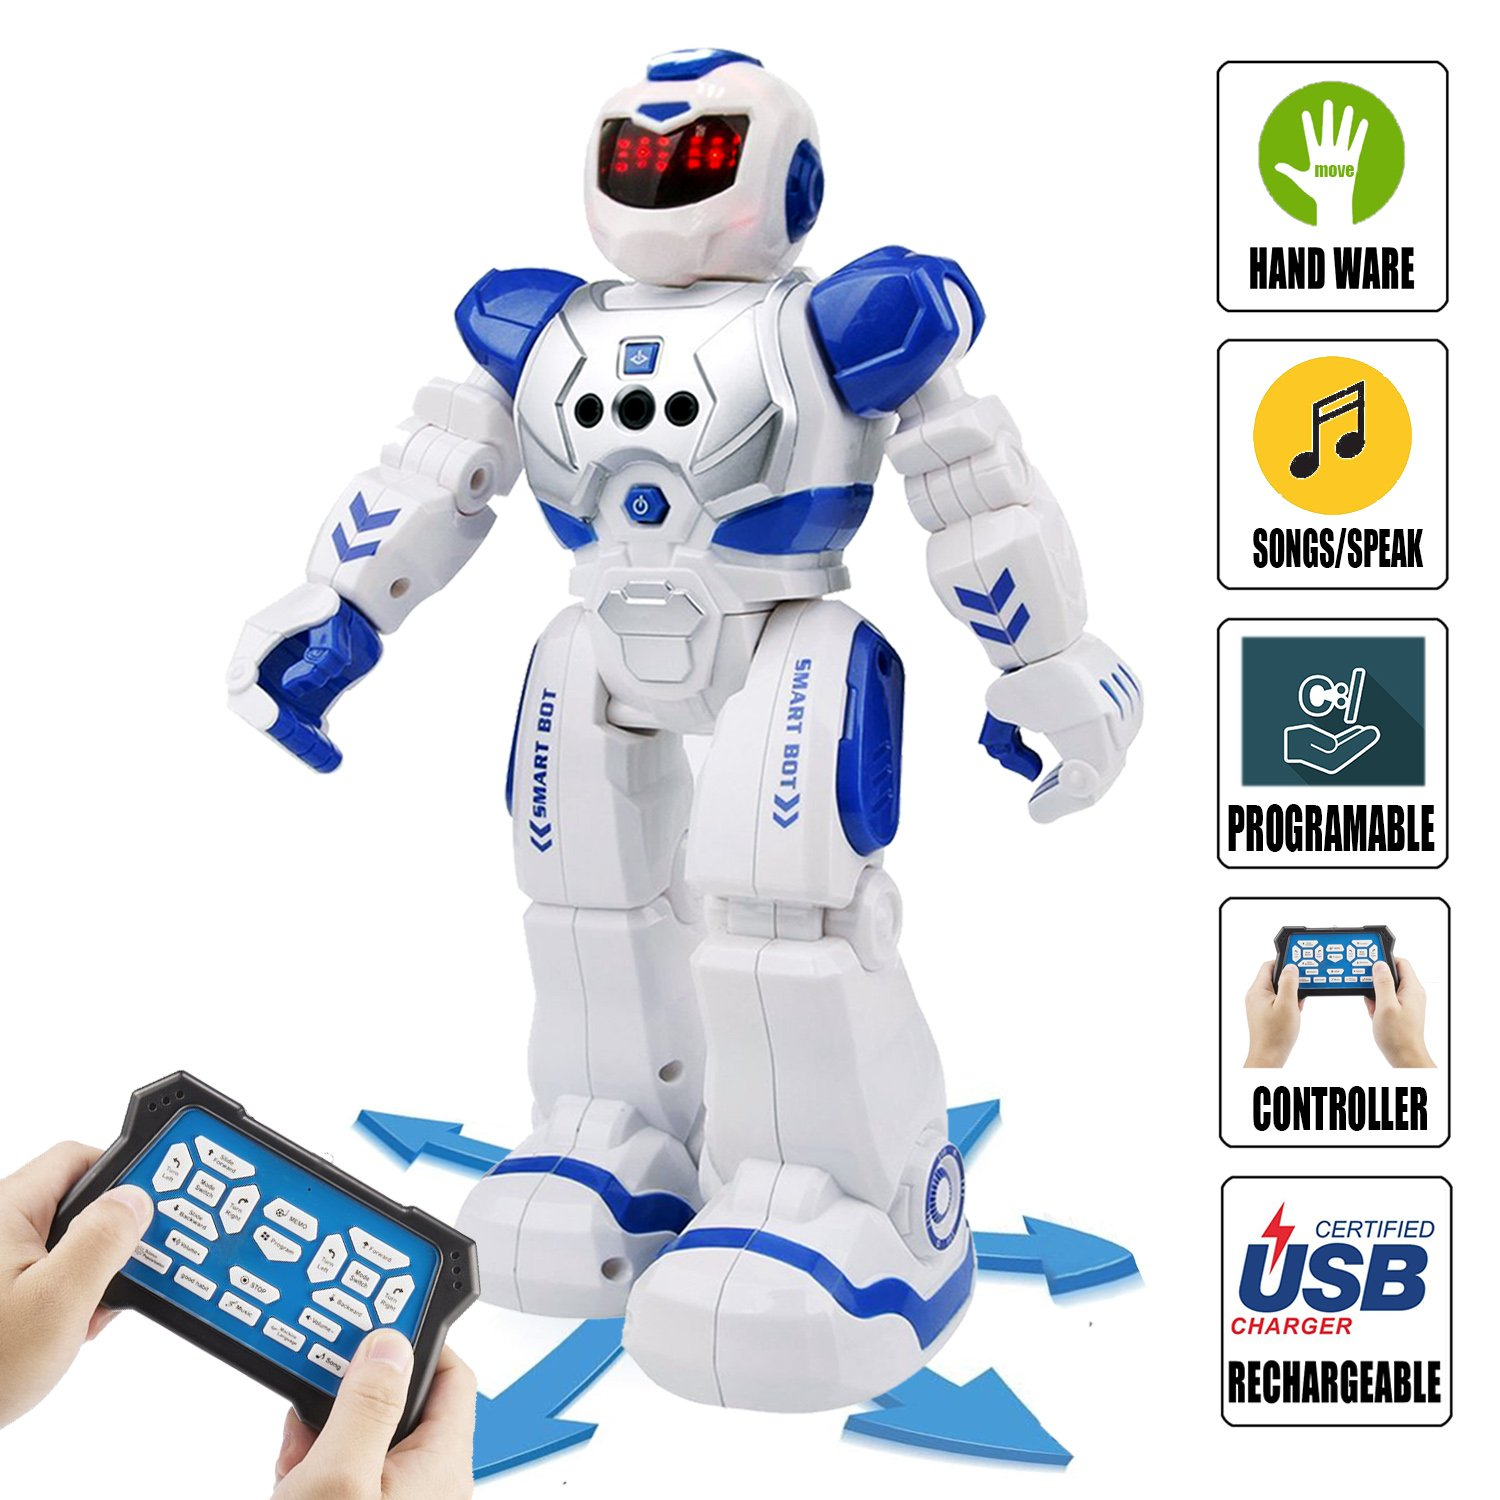 Amazon Remote Control RC Robot Toys ROKKES Dancing Robot